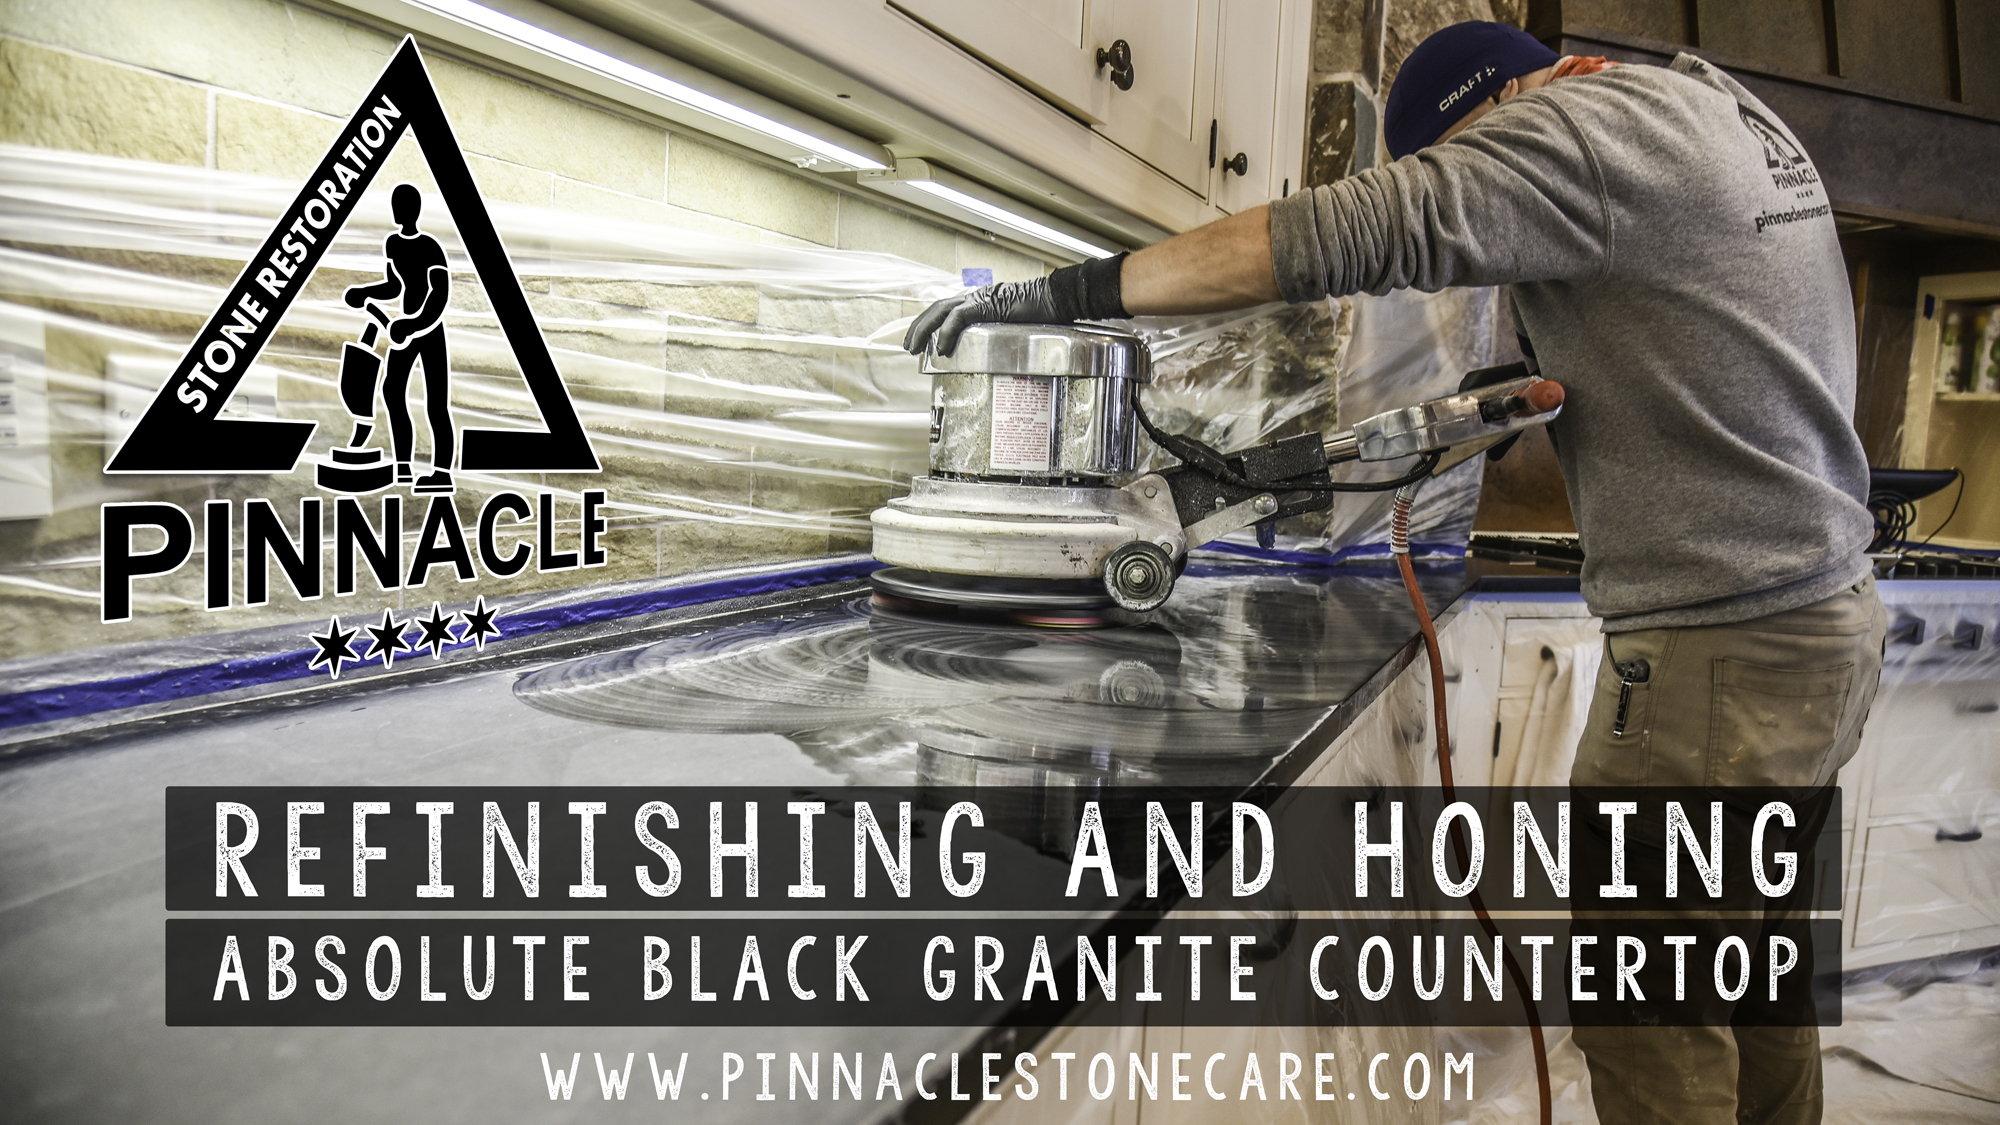 Absolute Black Granite Countertop Restoration